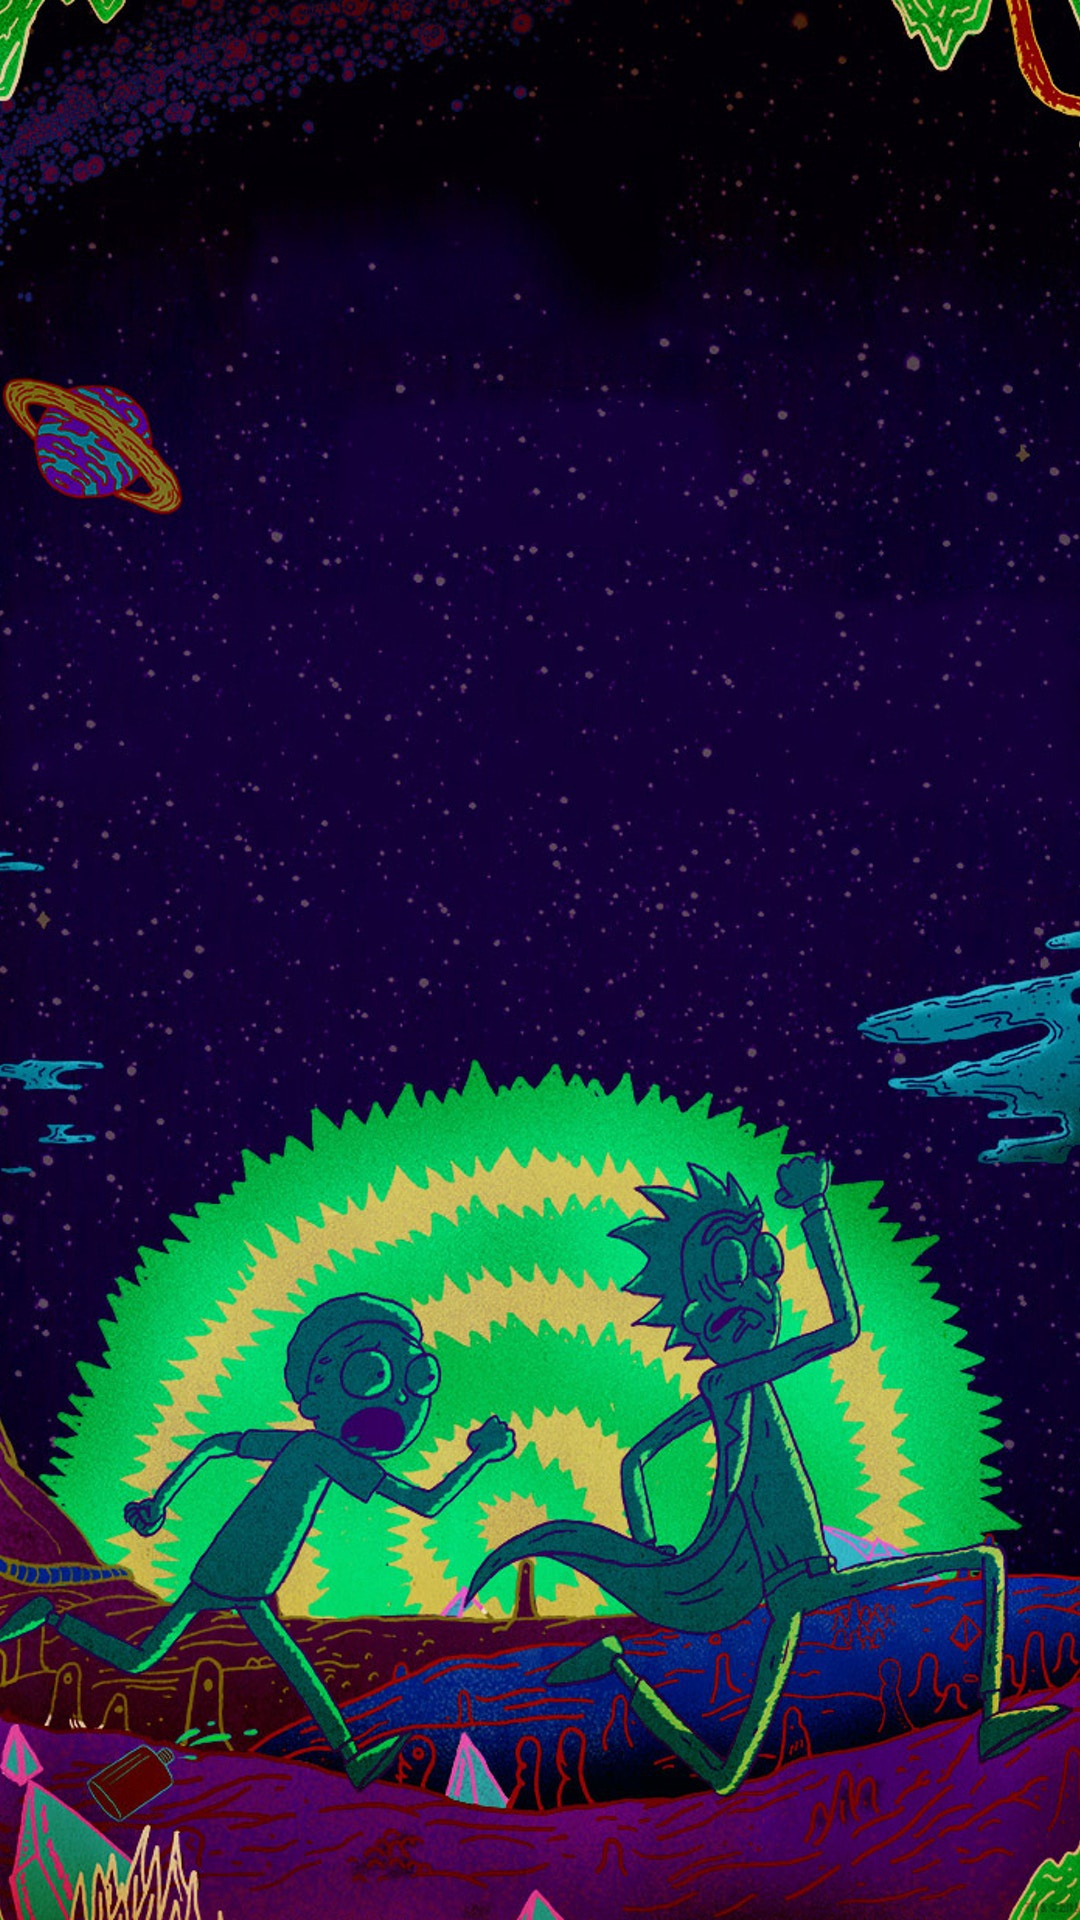 Rick And Morty Wallpaper Iphone Fondos De Pantalla Gratis